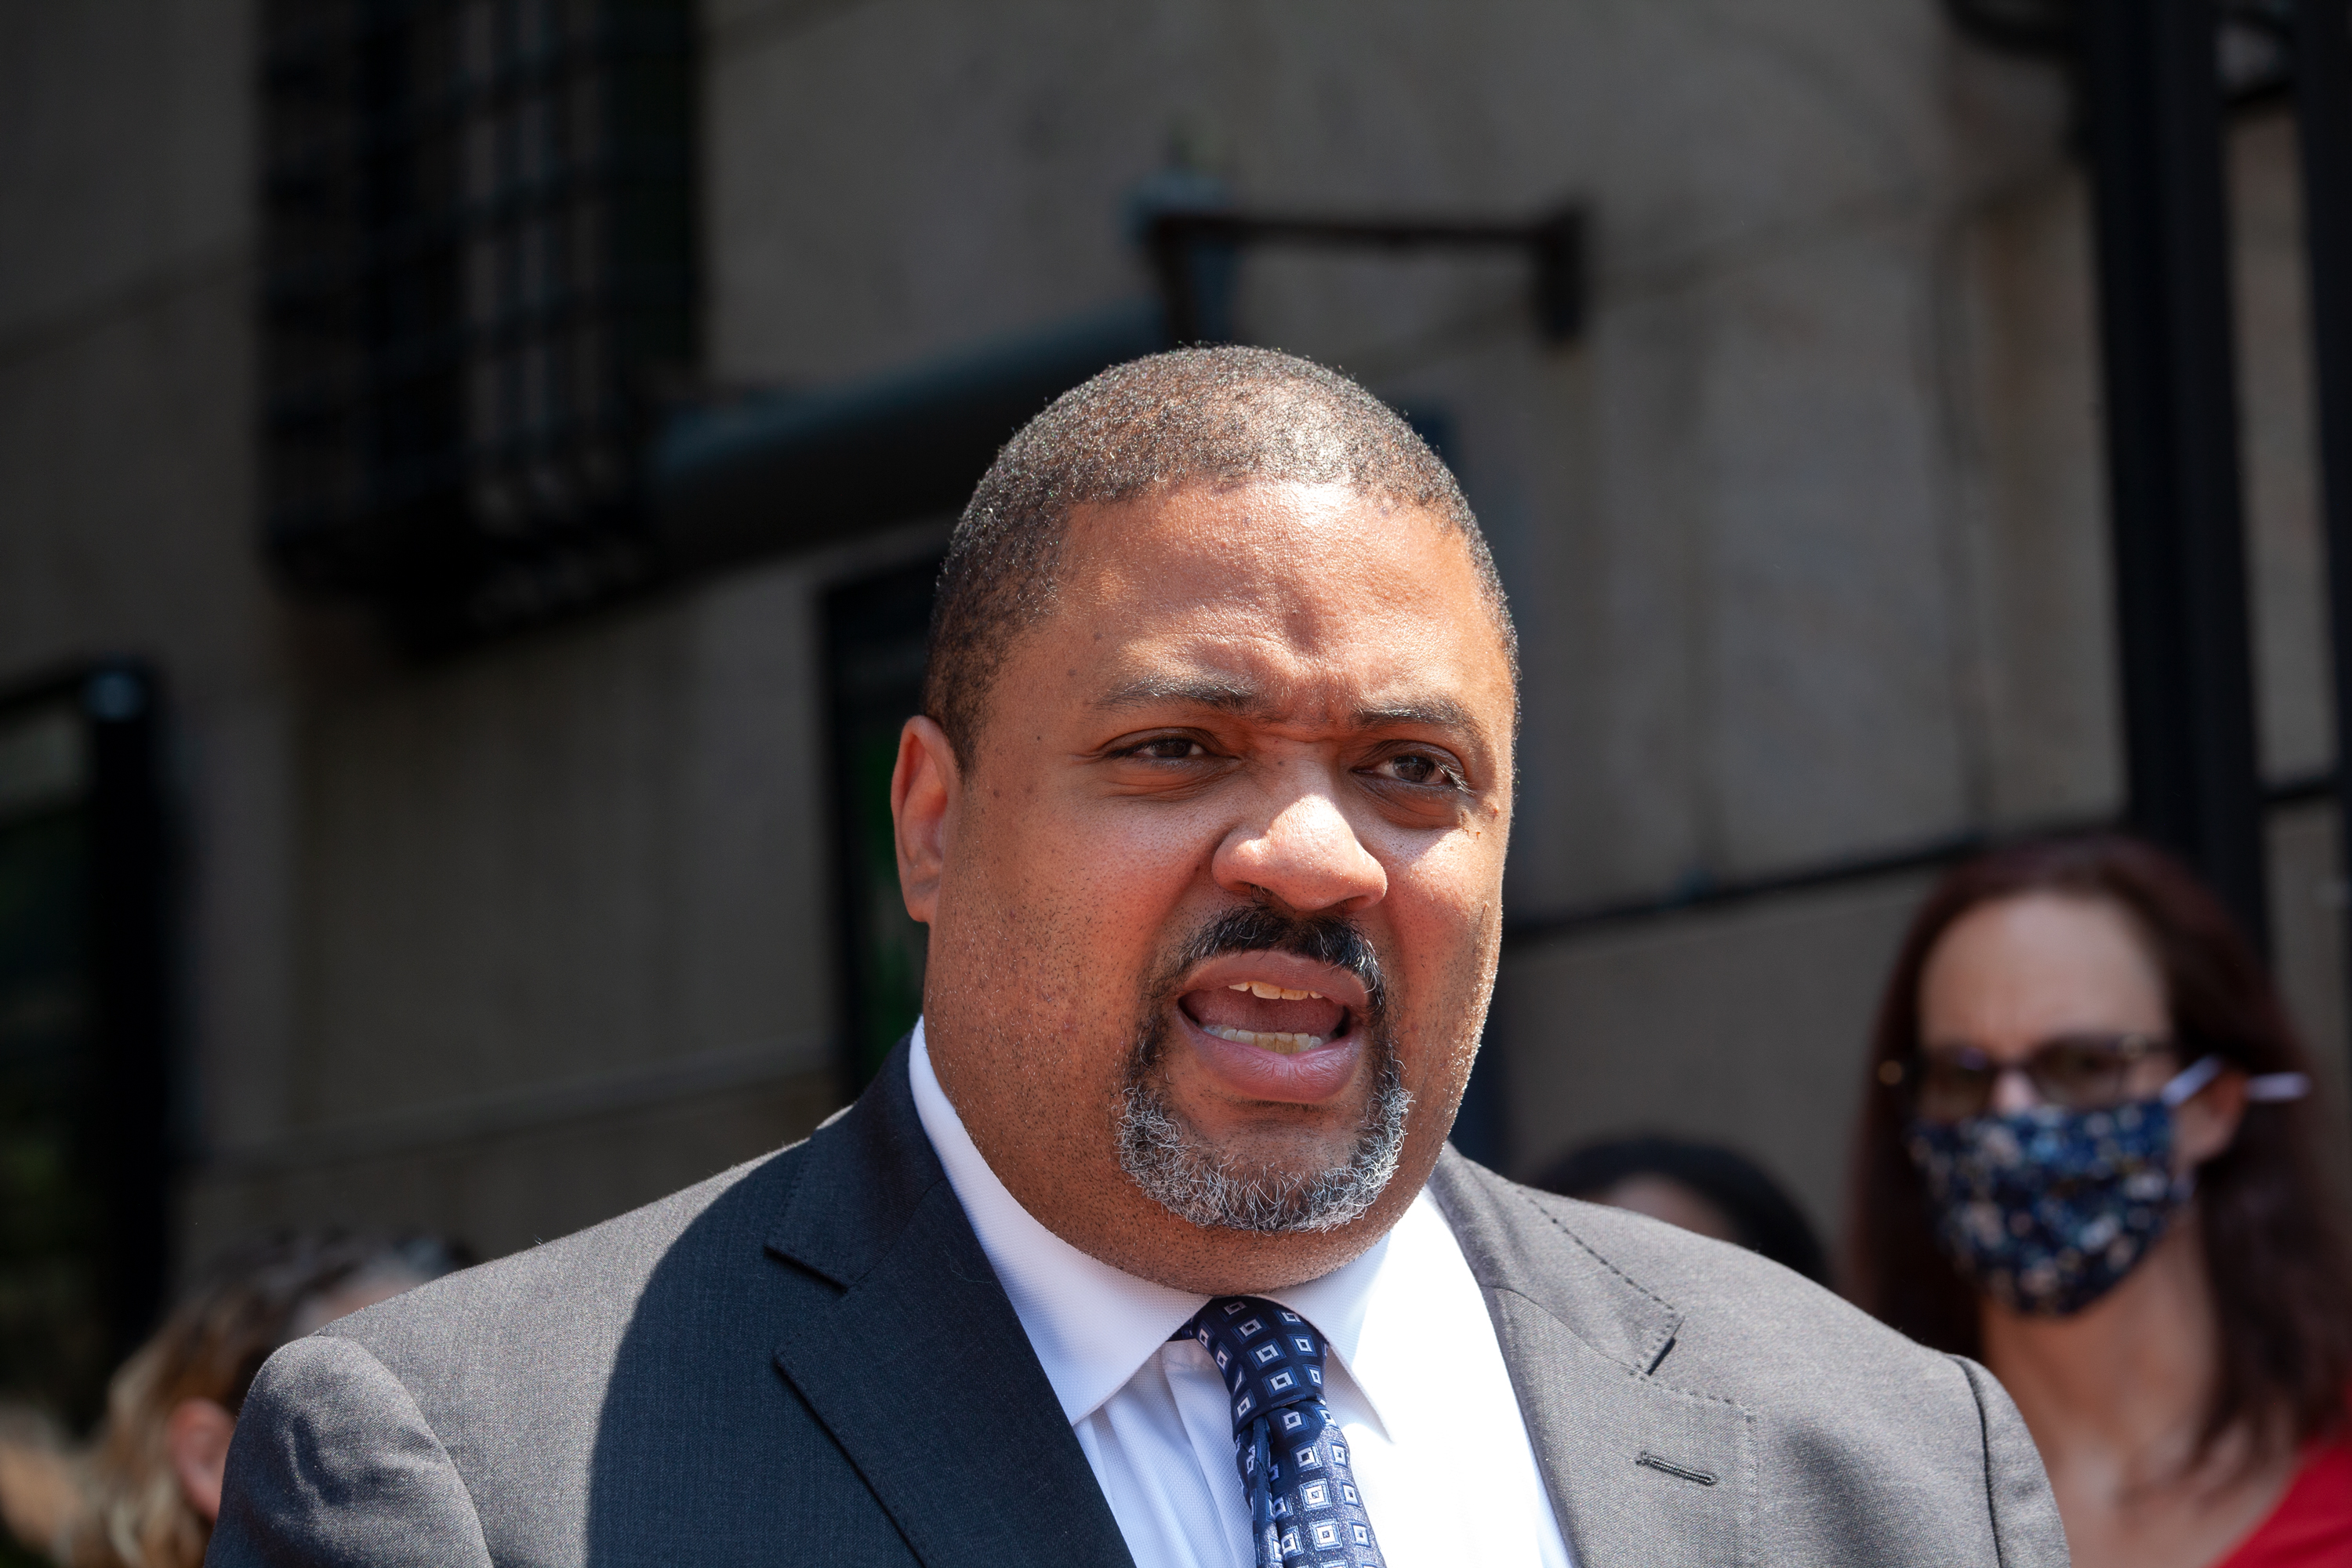 Manhattan district attorney candidate Alvin Bragg pushes for the Adult Survivors Act during a press conference outside Columbia University, May 26, 2021.